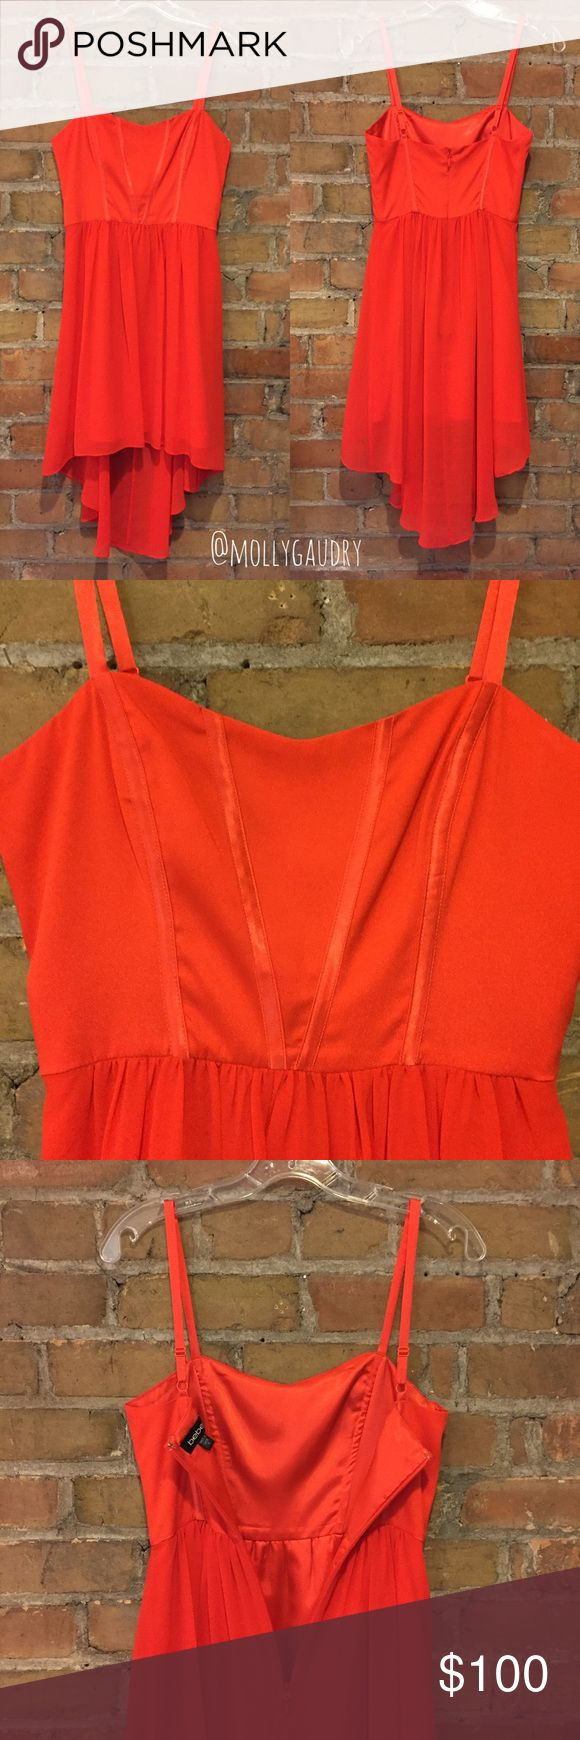 """BEBE """"Red [Orange!] High Low Woven Dress"""" I love this dress bc it's so silky & floaty on, but I've never had an occasion to wear it & now it's too short for my tastes. Important: it's listed online as """"red"""" but it's definitely a bright tangerine/orange (see pic w red ribbon for contrast). Also note: 4 ribbon-trimmed stays on front bodice, 2 on back, 1 on each side are all boned prob w plastic. Straps adjustable, fully lined, 15"""" armpit to armpit pulled slightly or 16"""" stretched, 12.5-12.75…"""